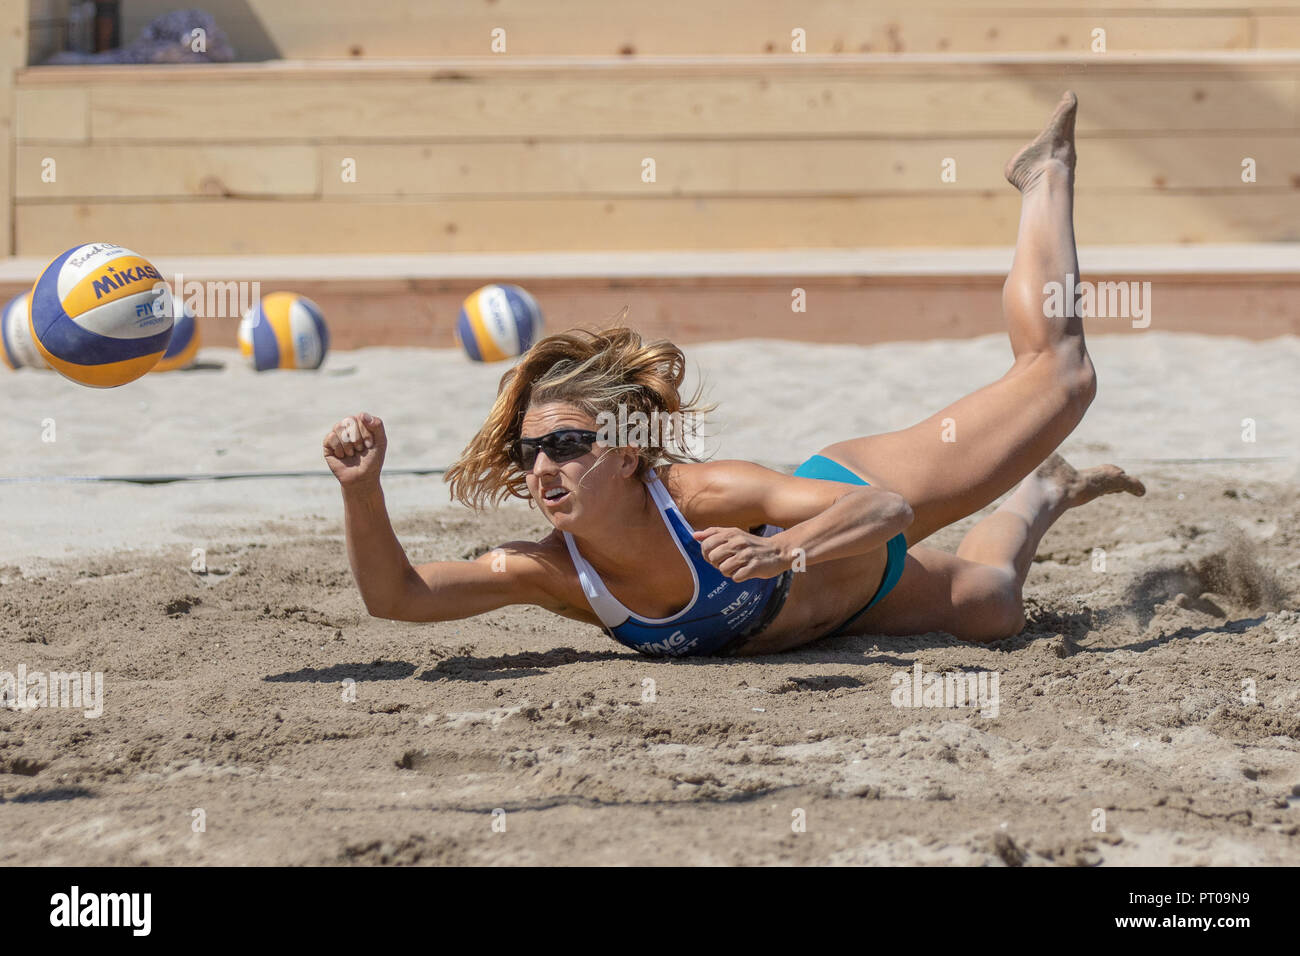 Katie Spieler (USA) digs the ball during the King of the Court. Photo: John Geldermann/Alamy Live News - Stock Image